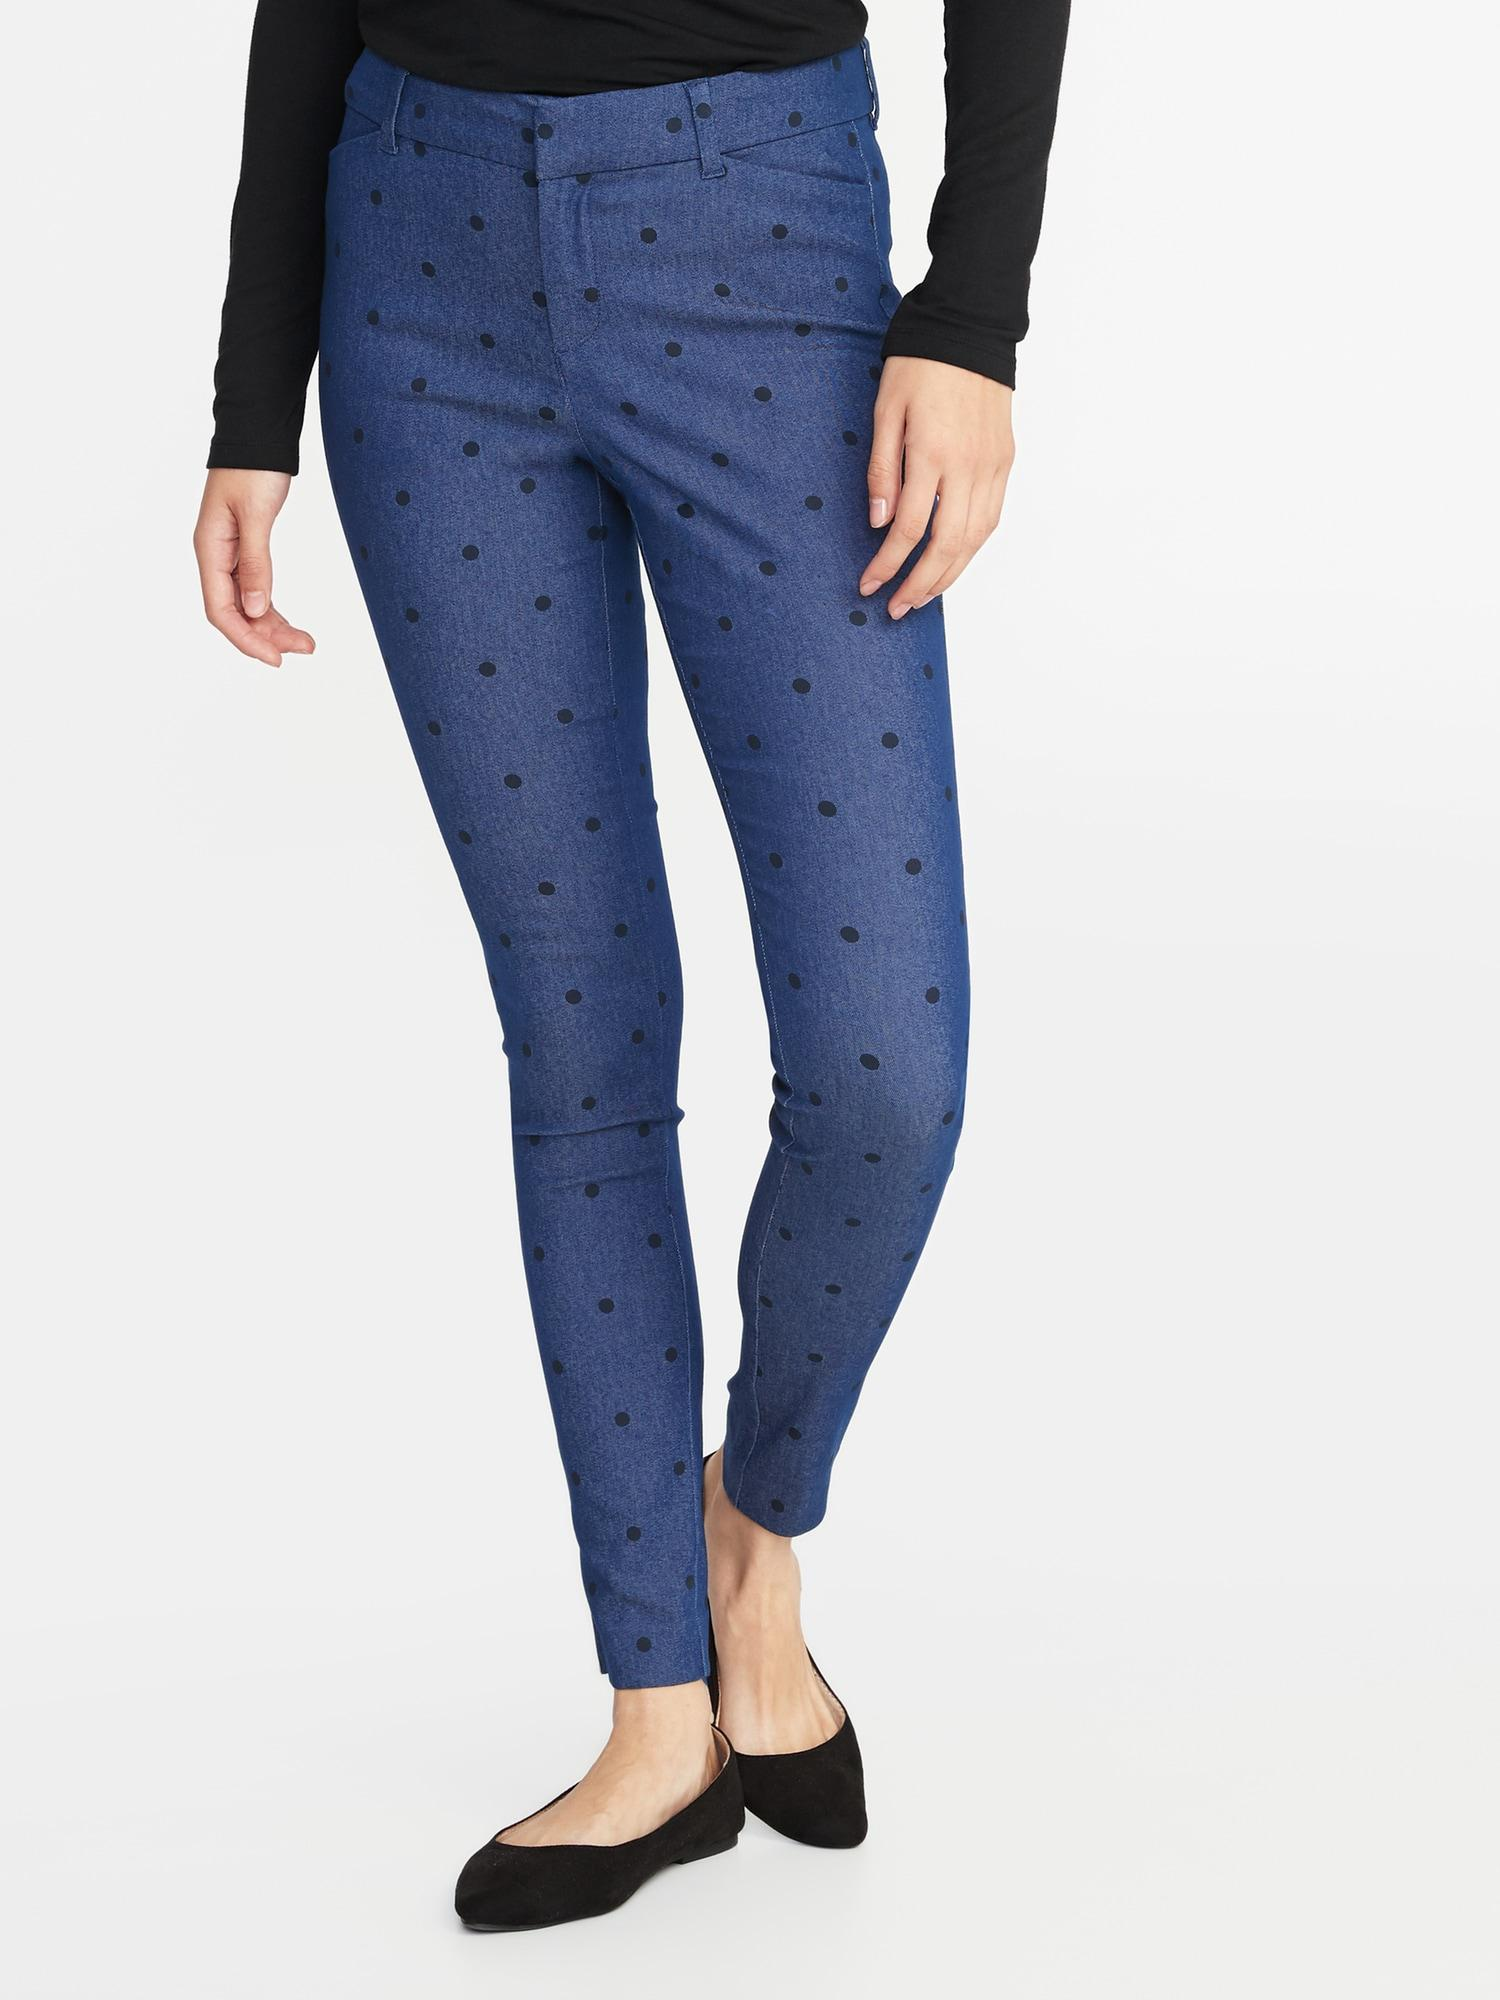 4152409d59dda1 Old Navy Mid-rise Full-length Pixie Pants in Blue - Lyst